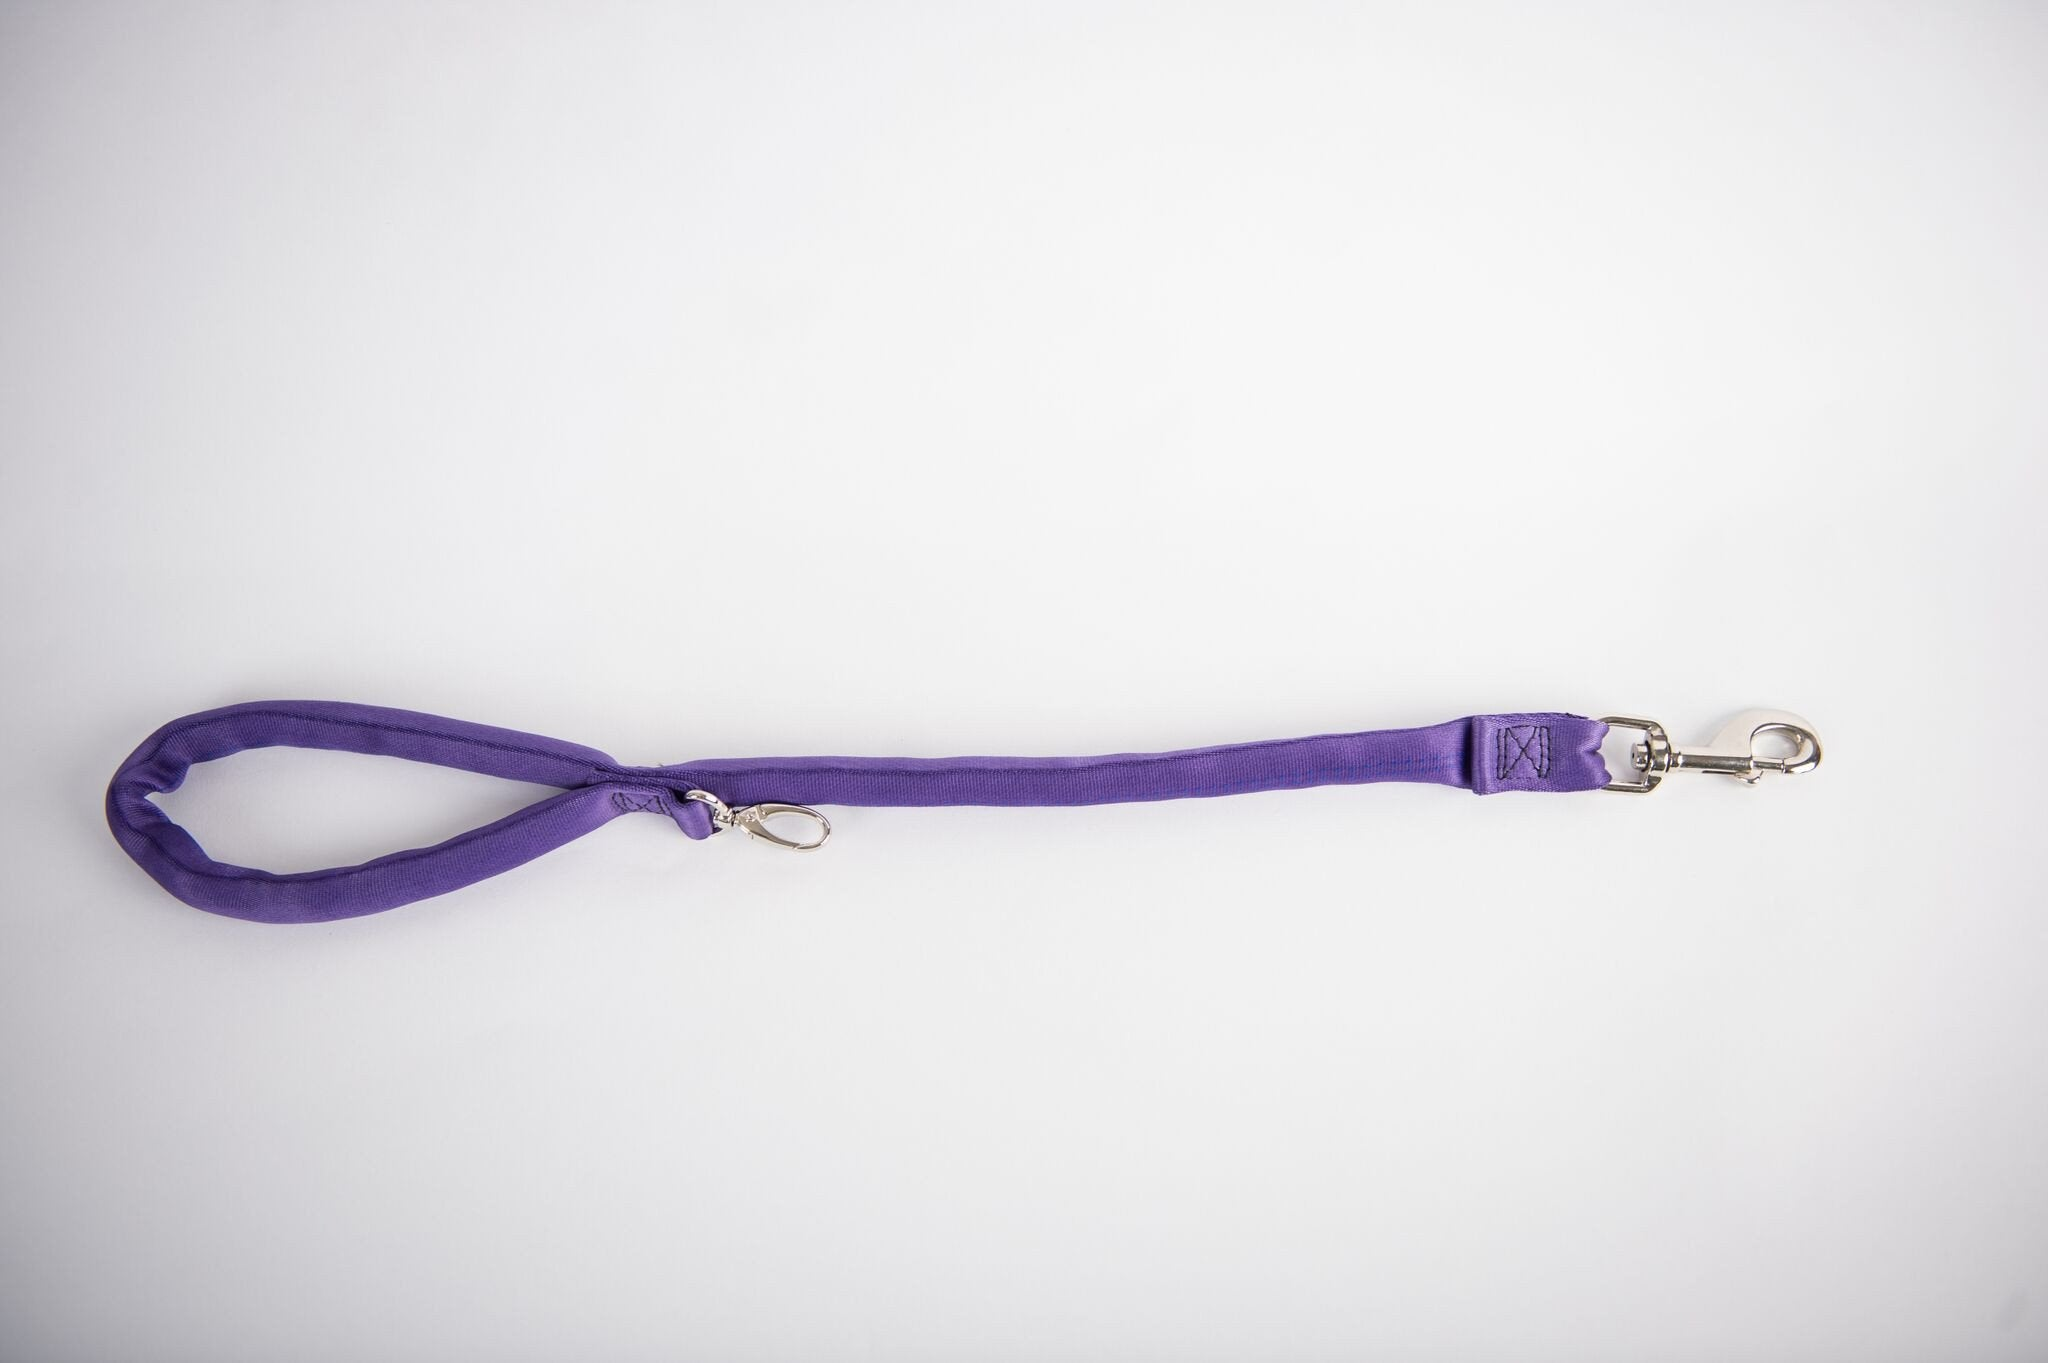 Dual Snap Leash - Purple